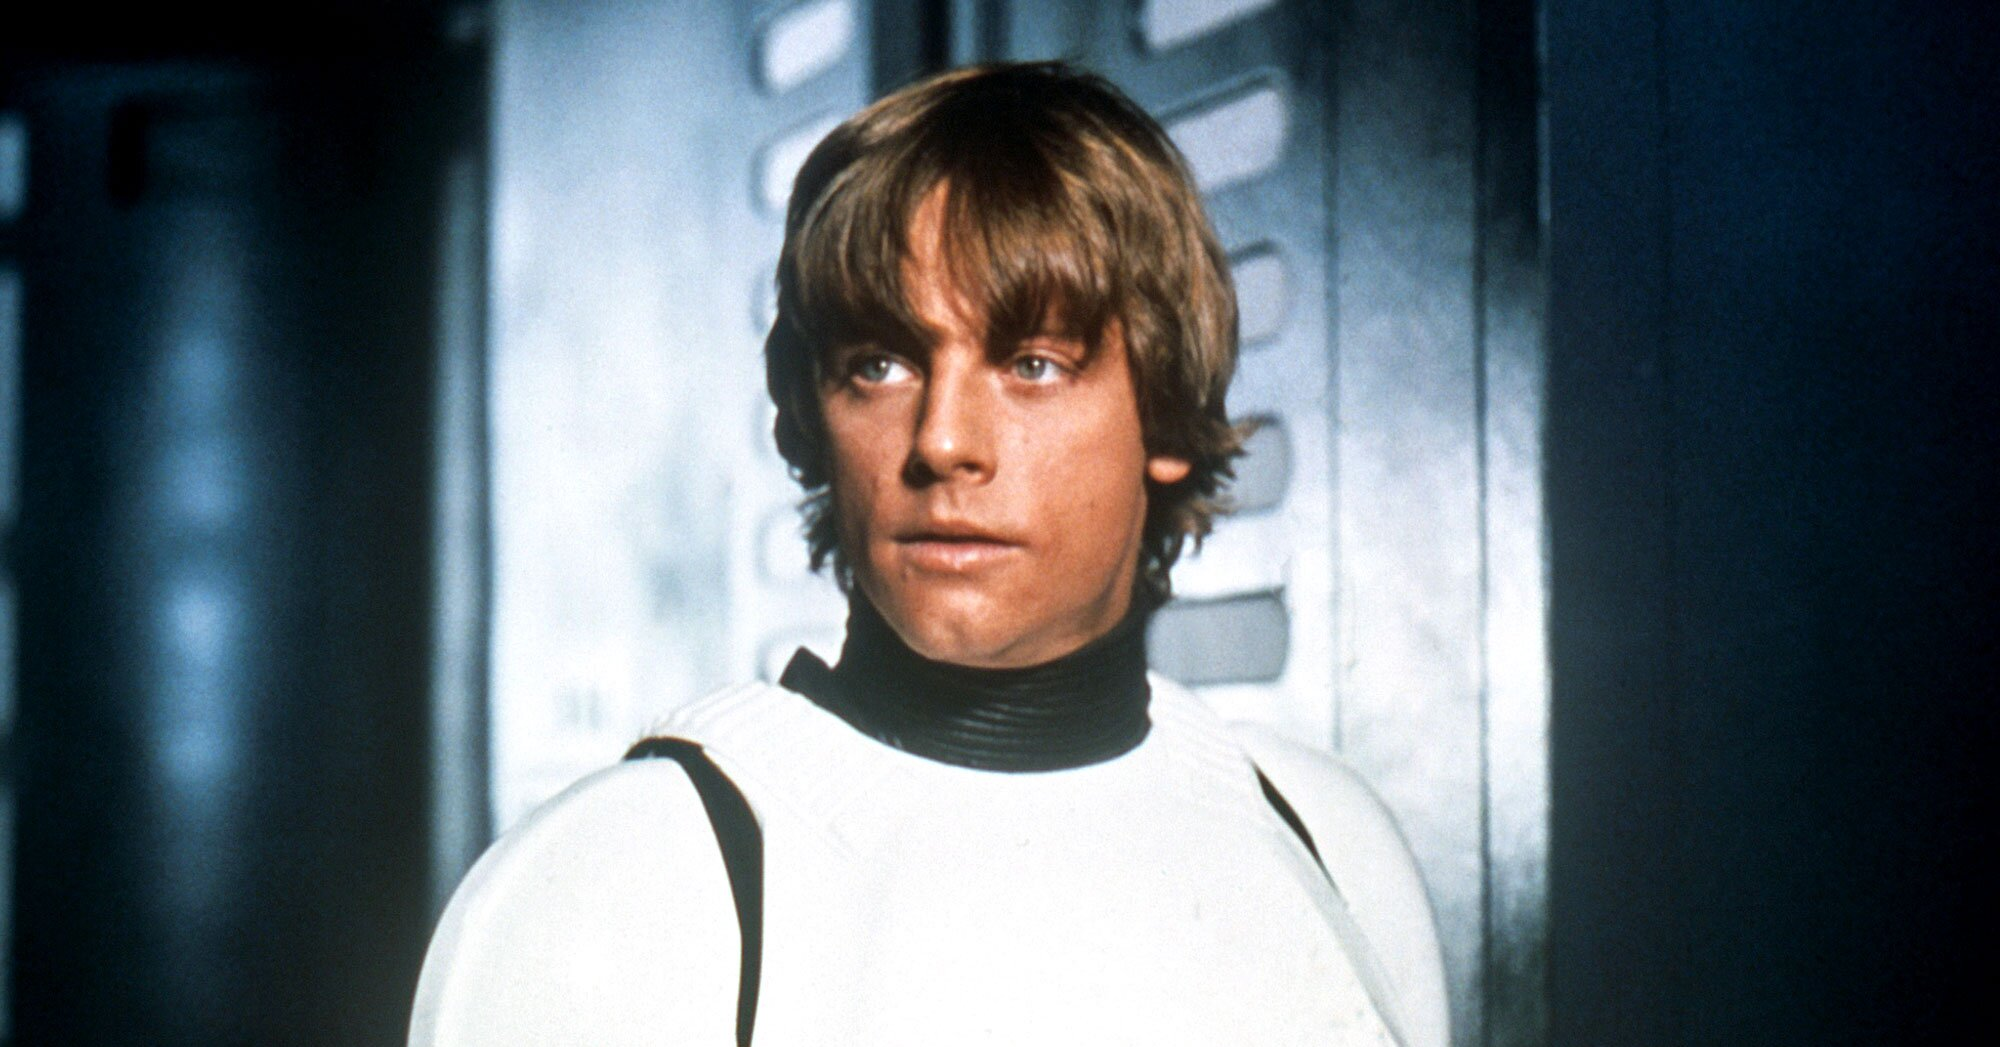 Mark Hamill explains why his time on 'Star Wars' is officially over